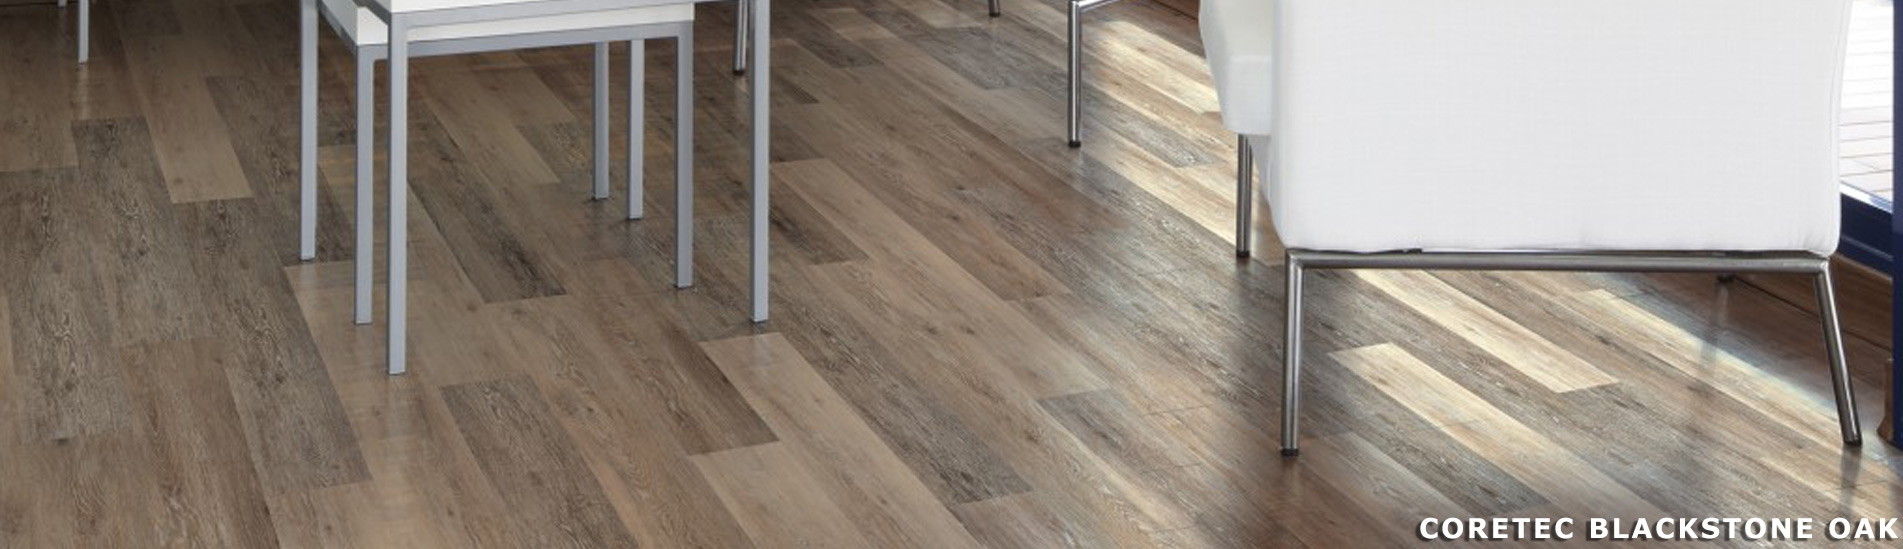 Flooring Company In Bradenton Fl